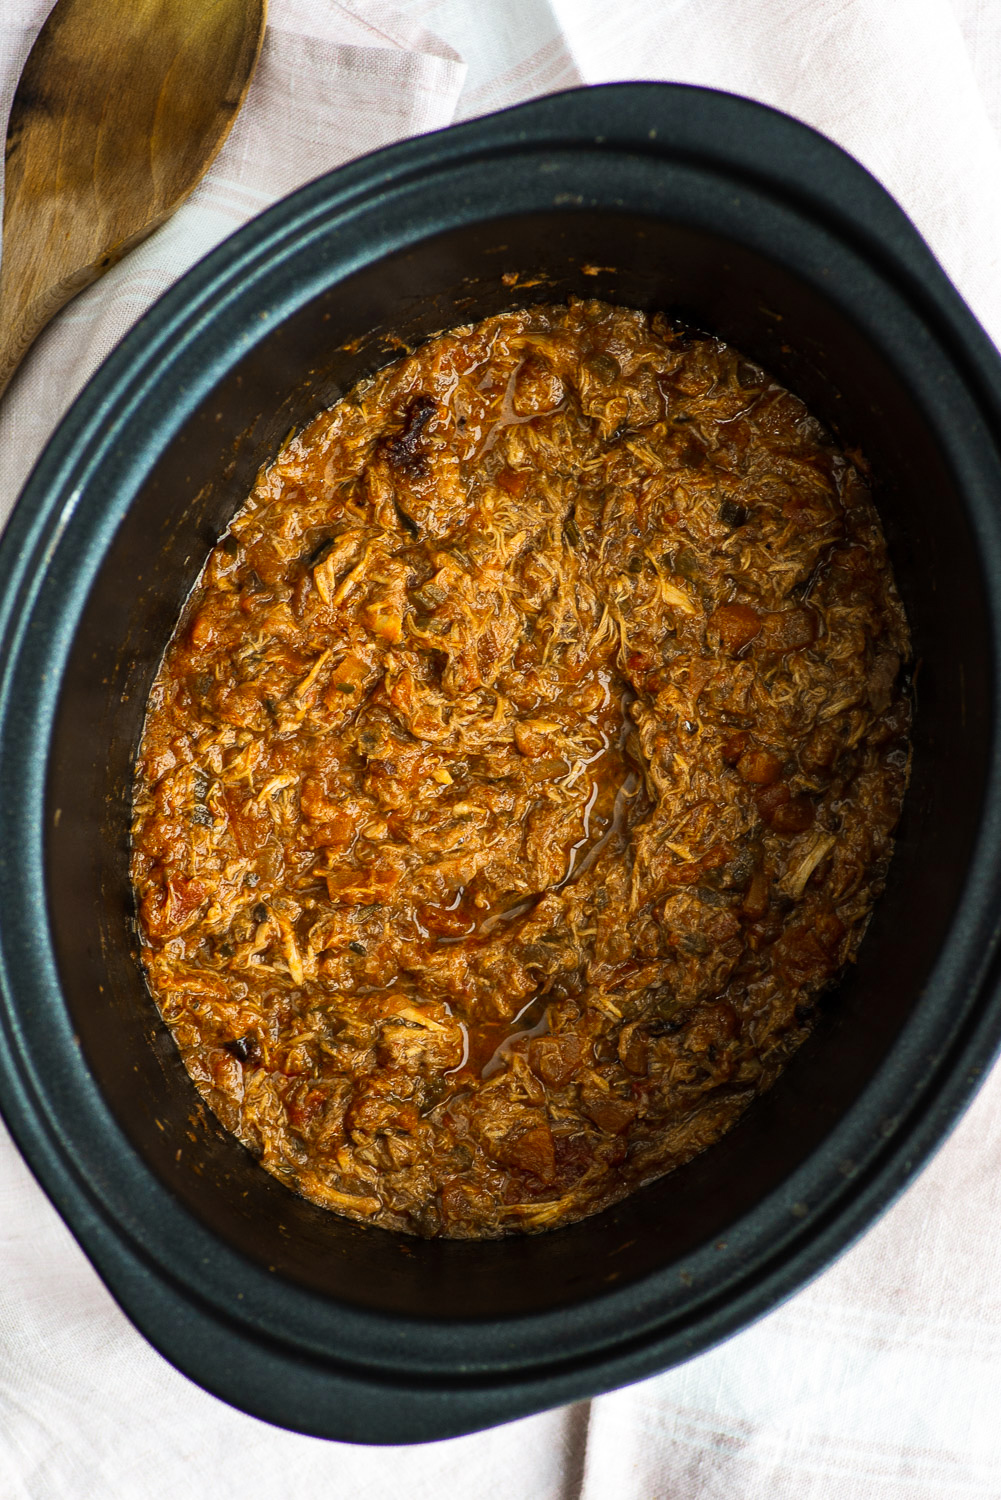 Slow cooked chicken sauce with chopped tomatoes and red wine